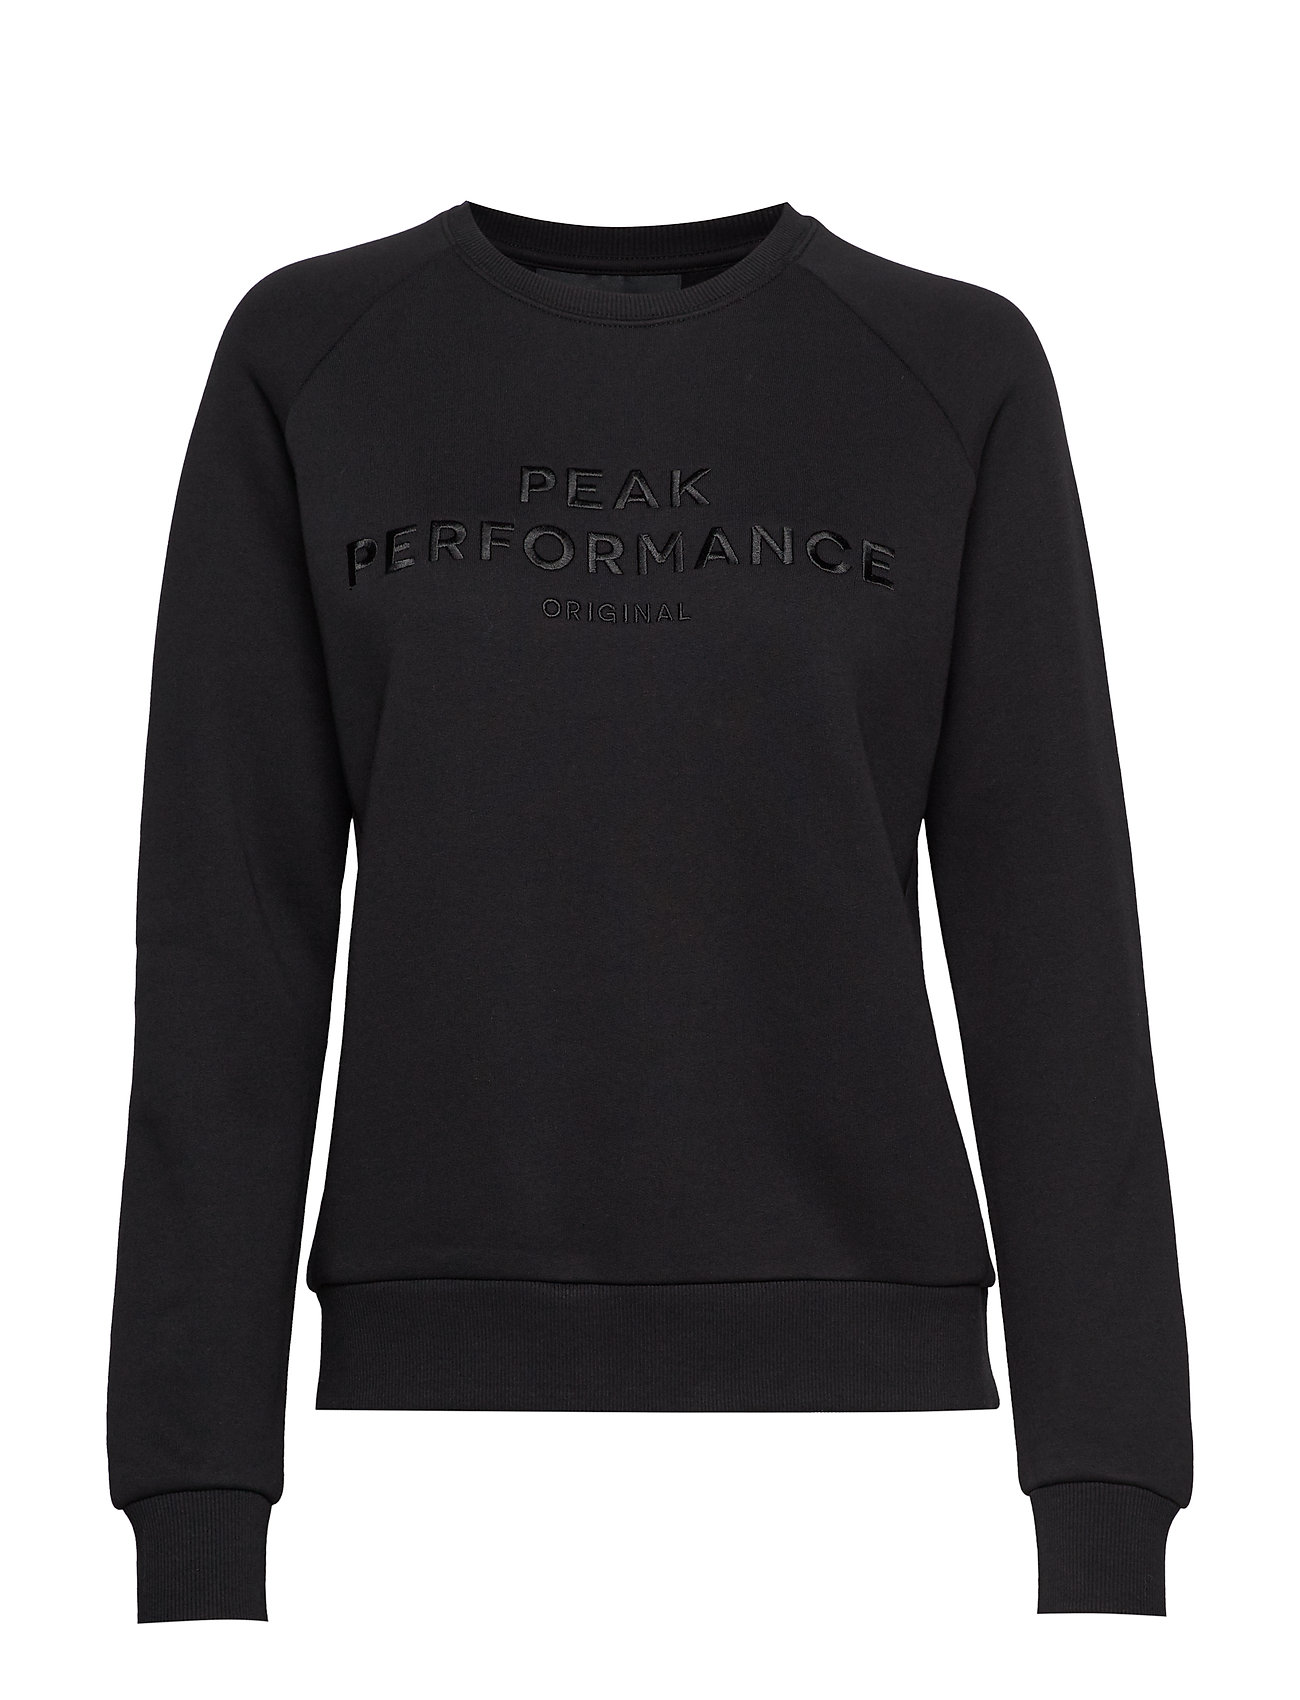 Peak Performance W ORIG C - BLACK